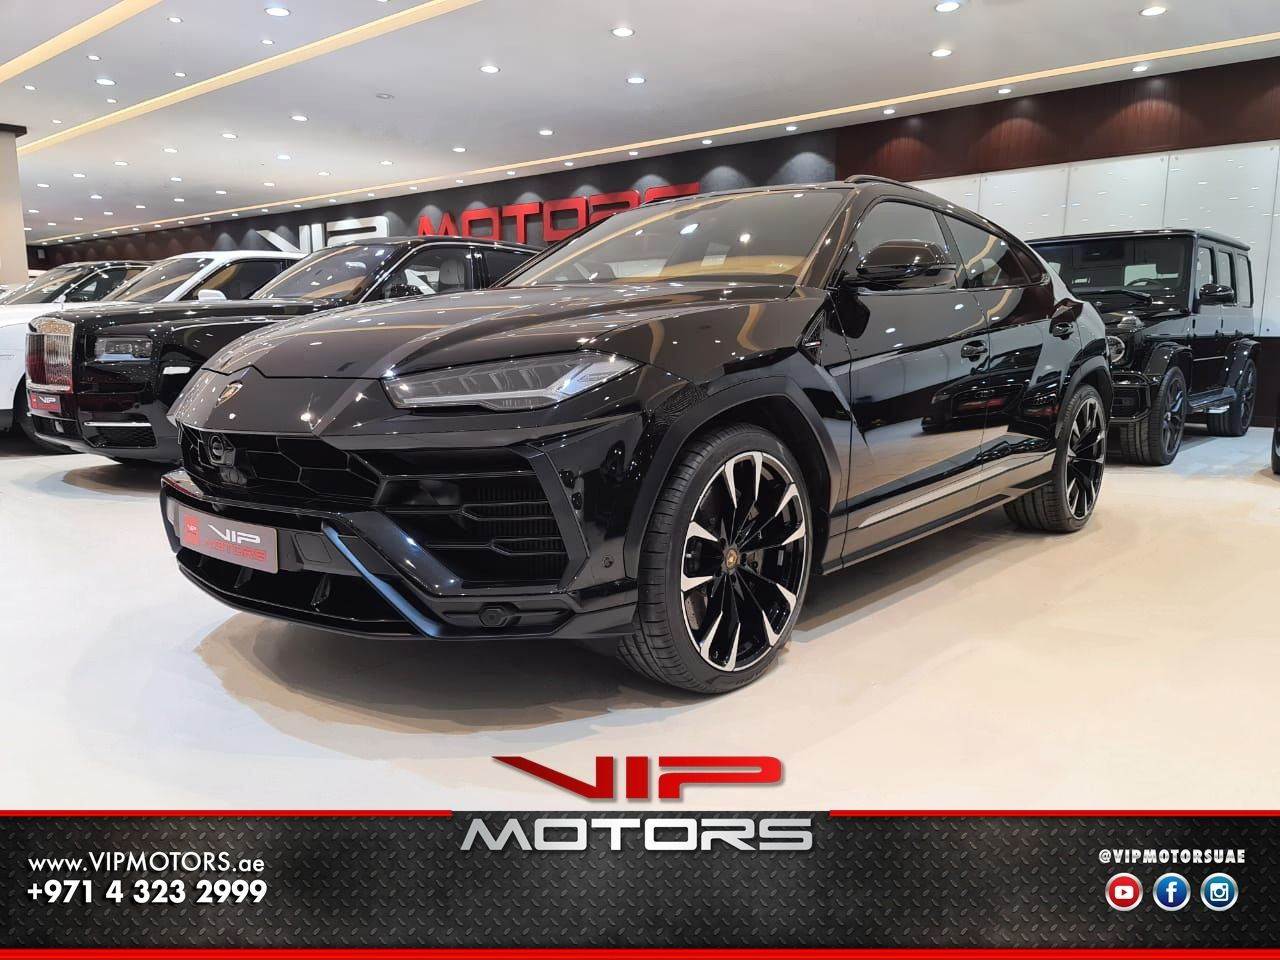 Lamborghini Urus-Black-2019-front-side -view-vip-motors